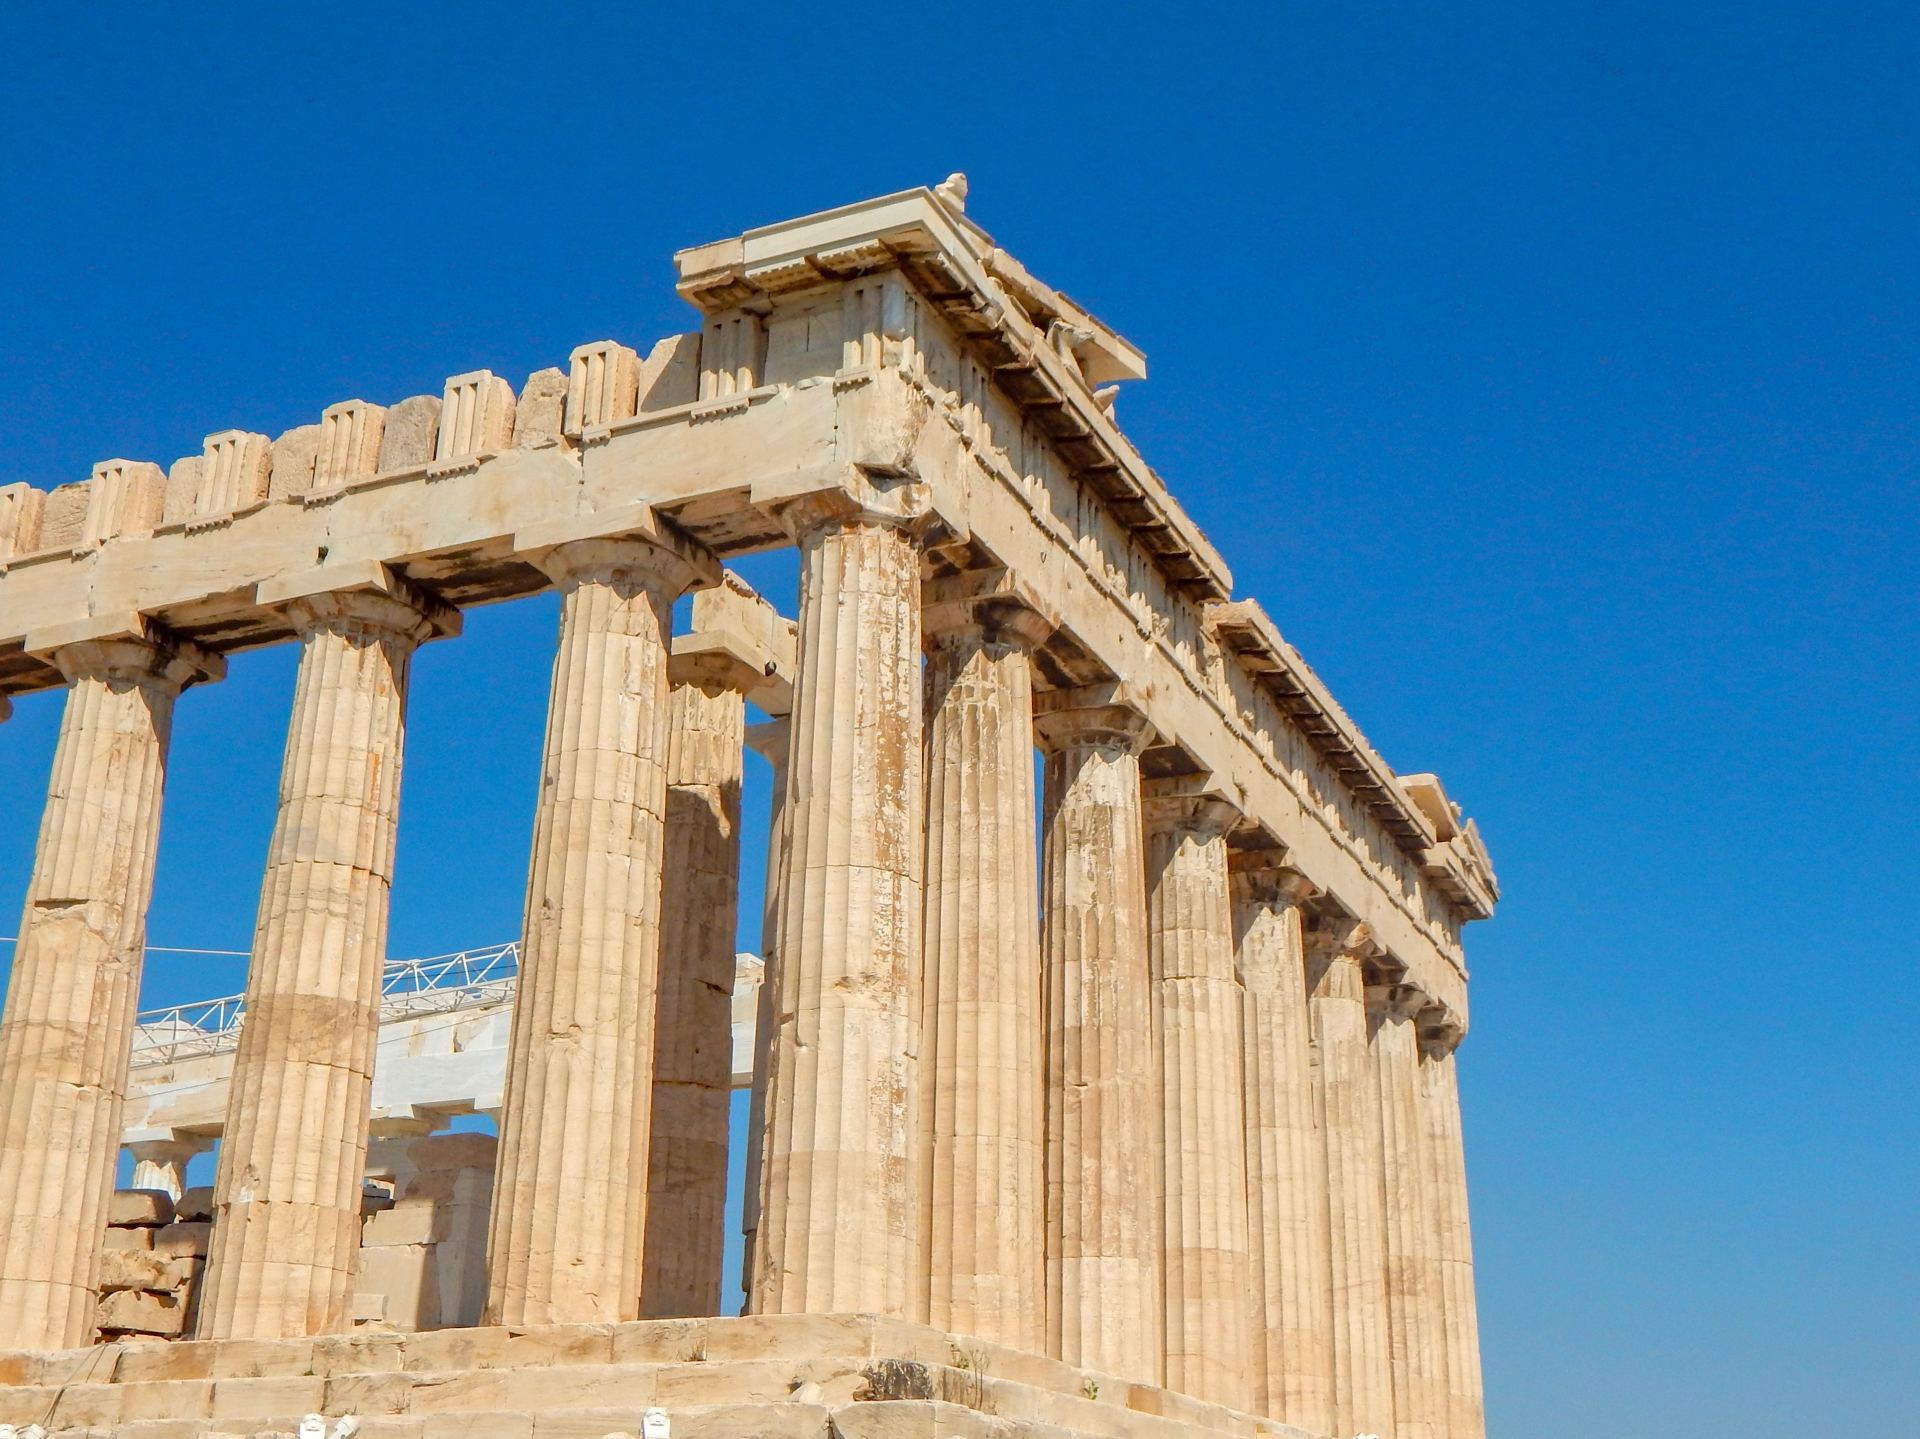 Parthenon: Construction and Reconstruction